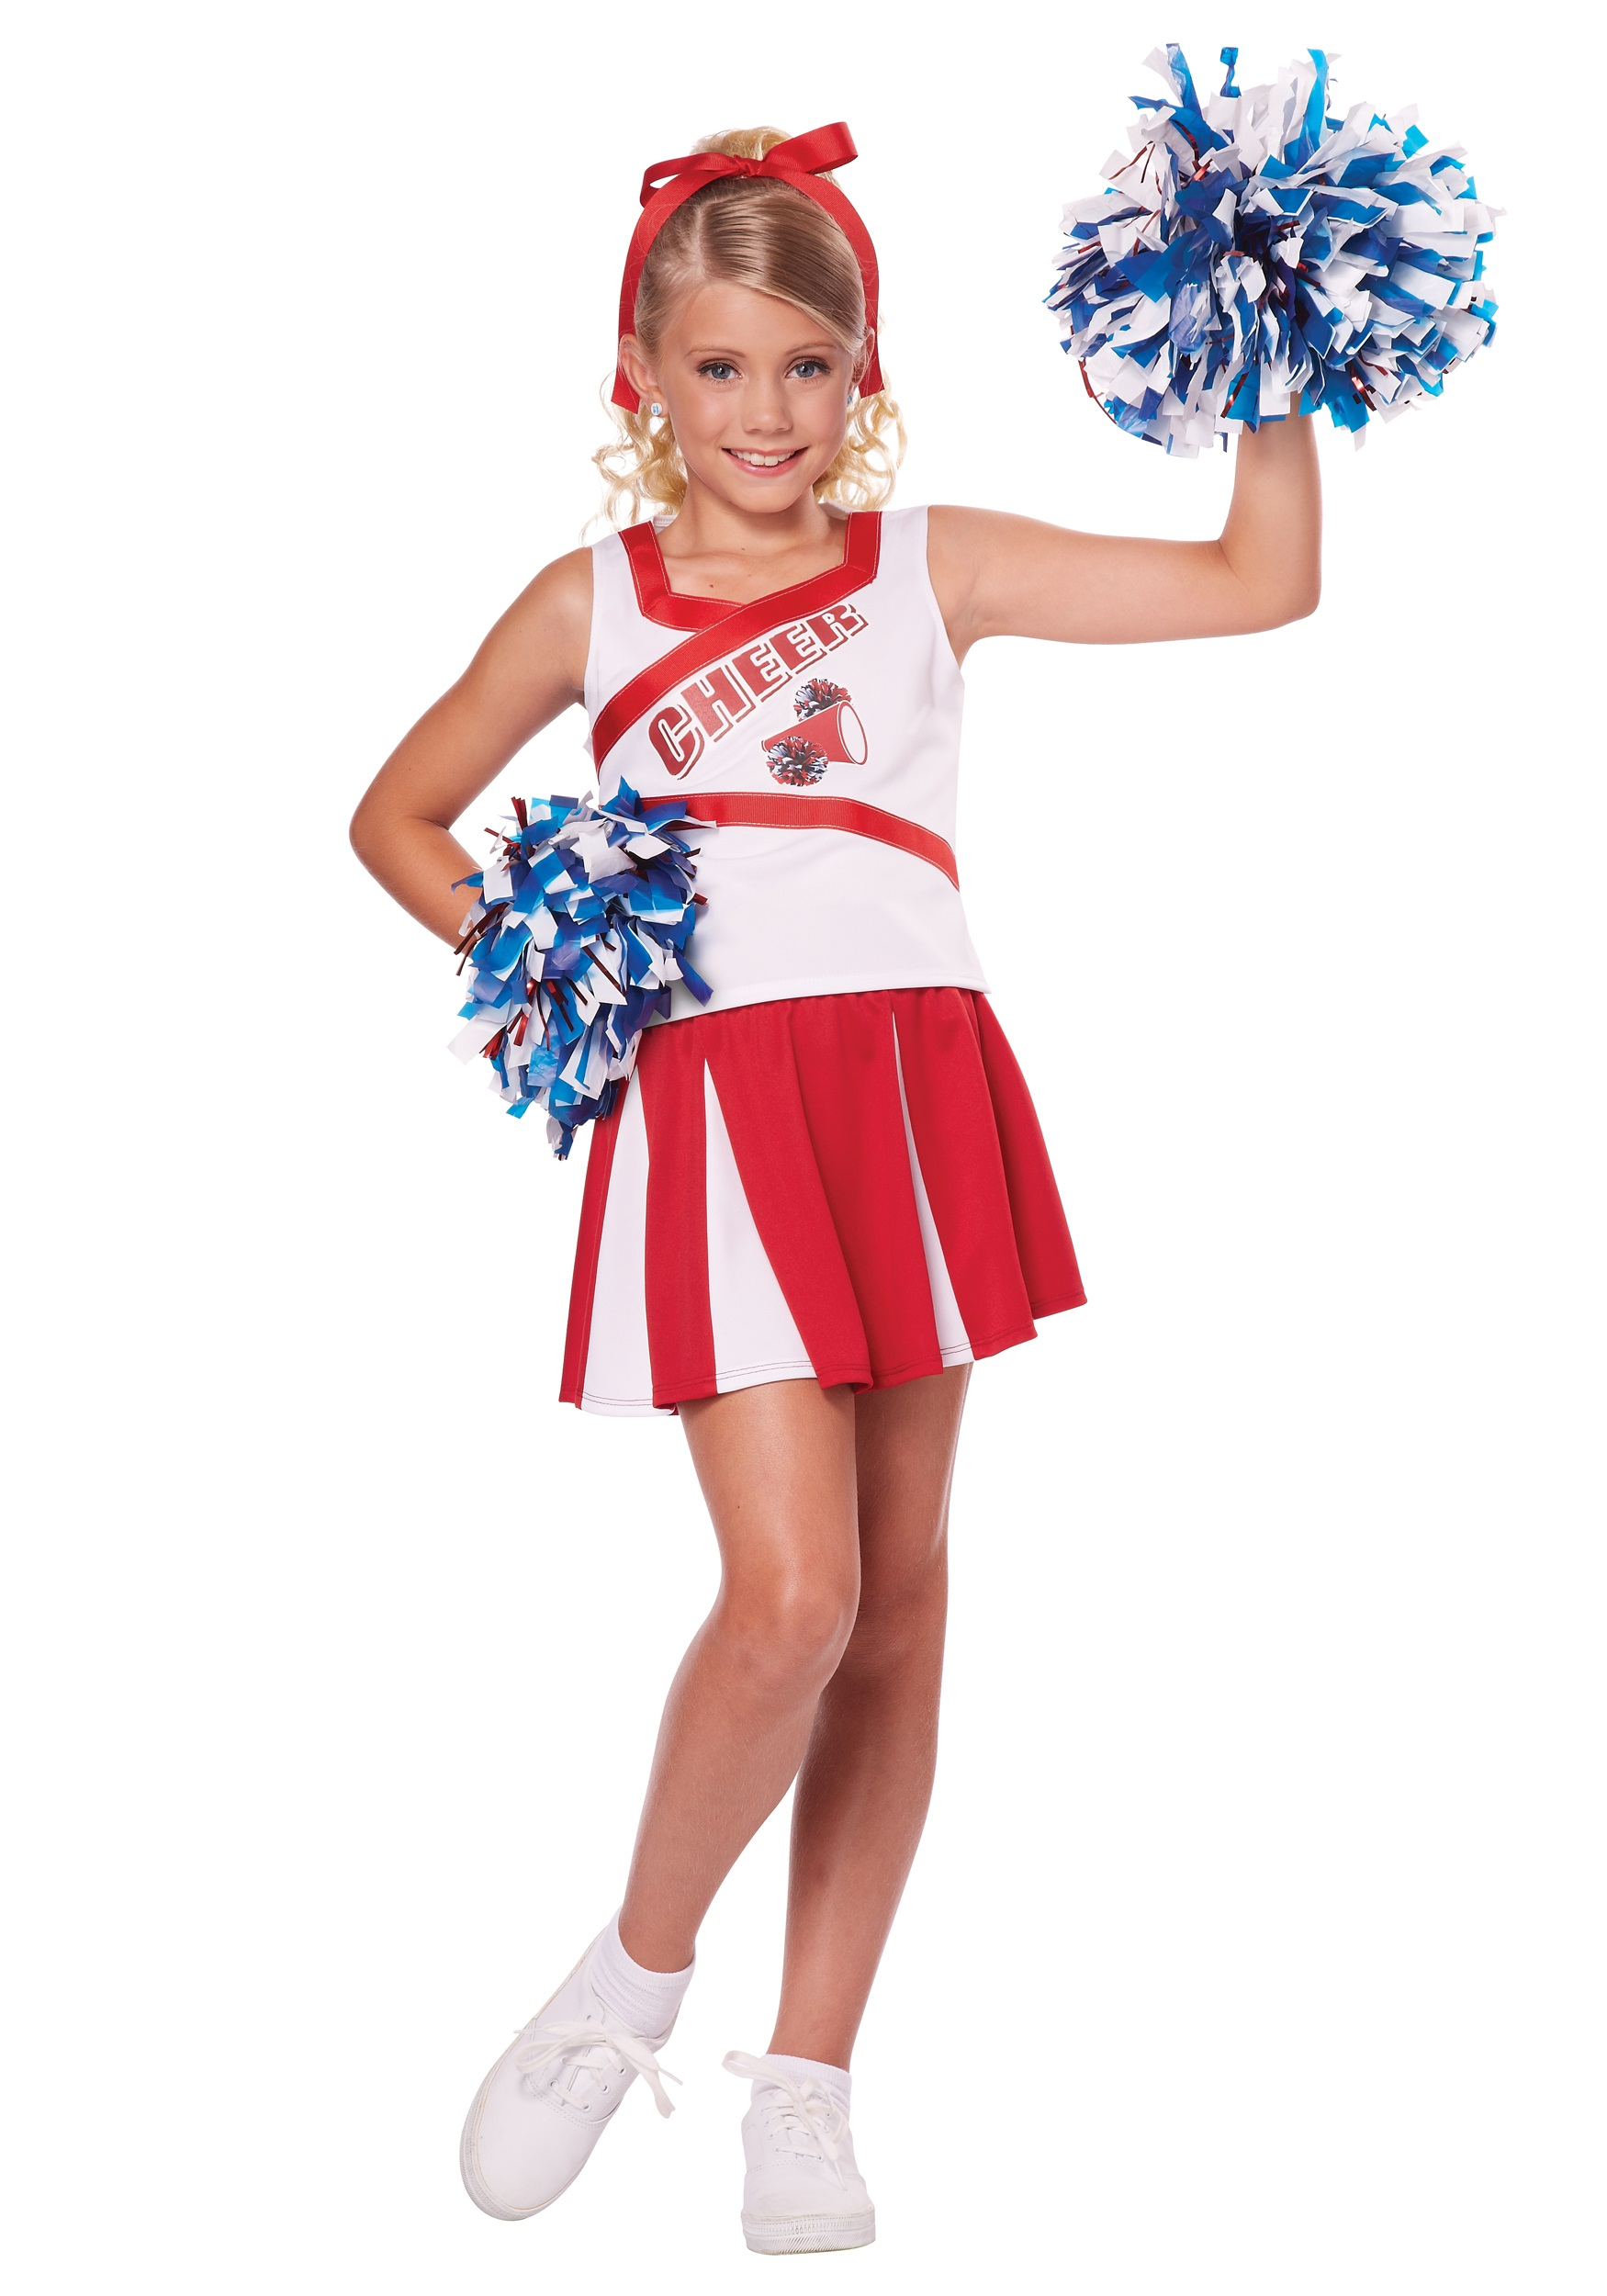 b5b22c62163 Child High School Cheerleader Costume